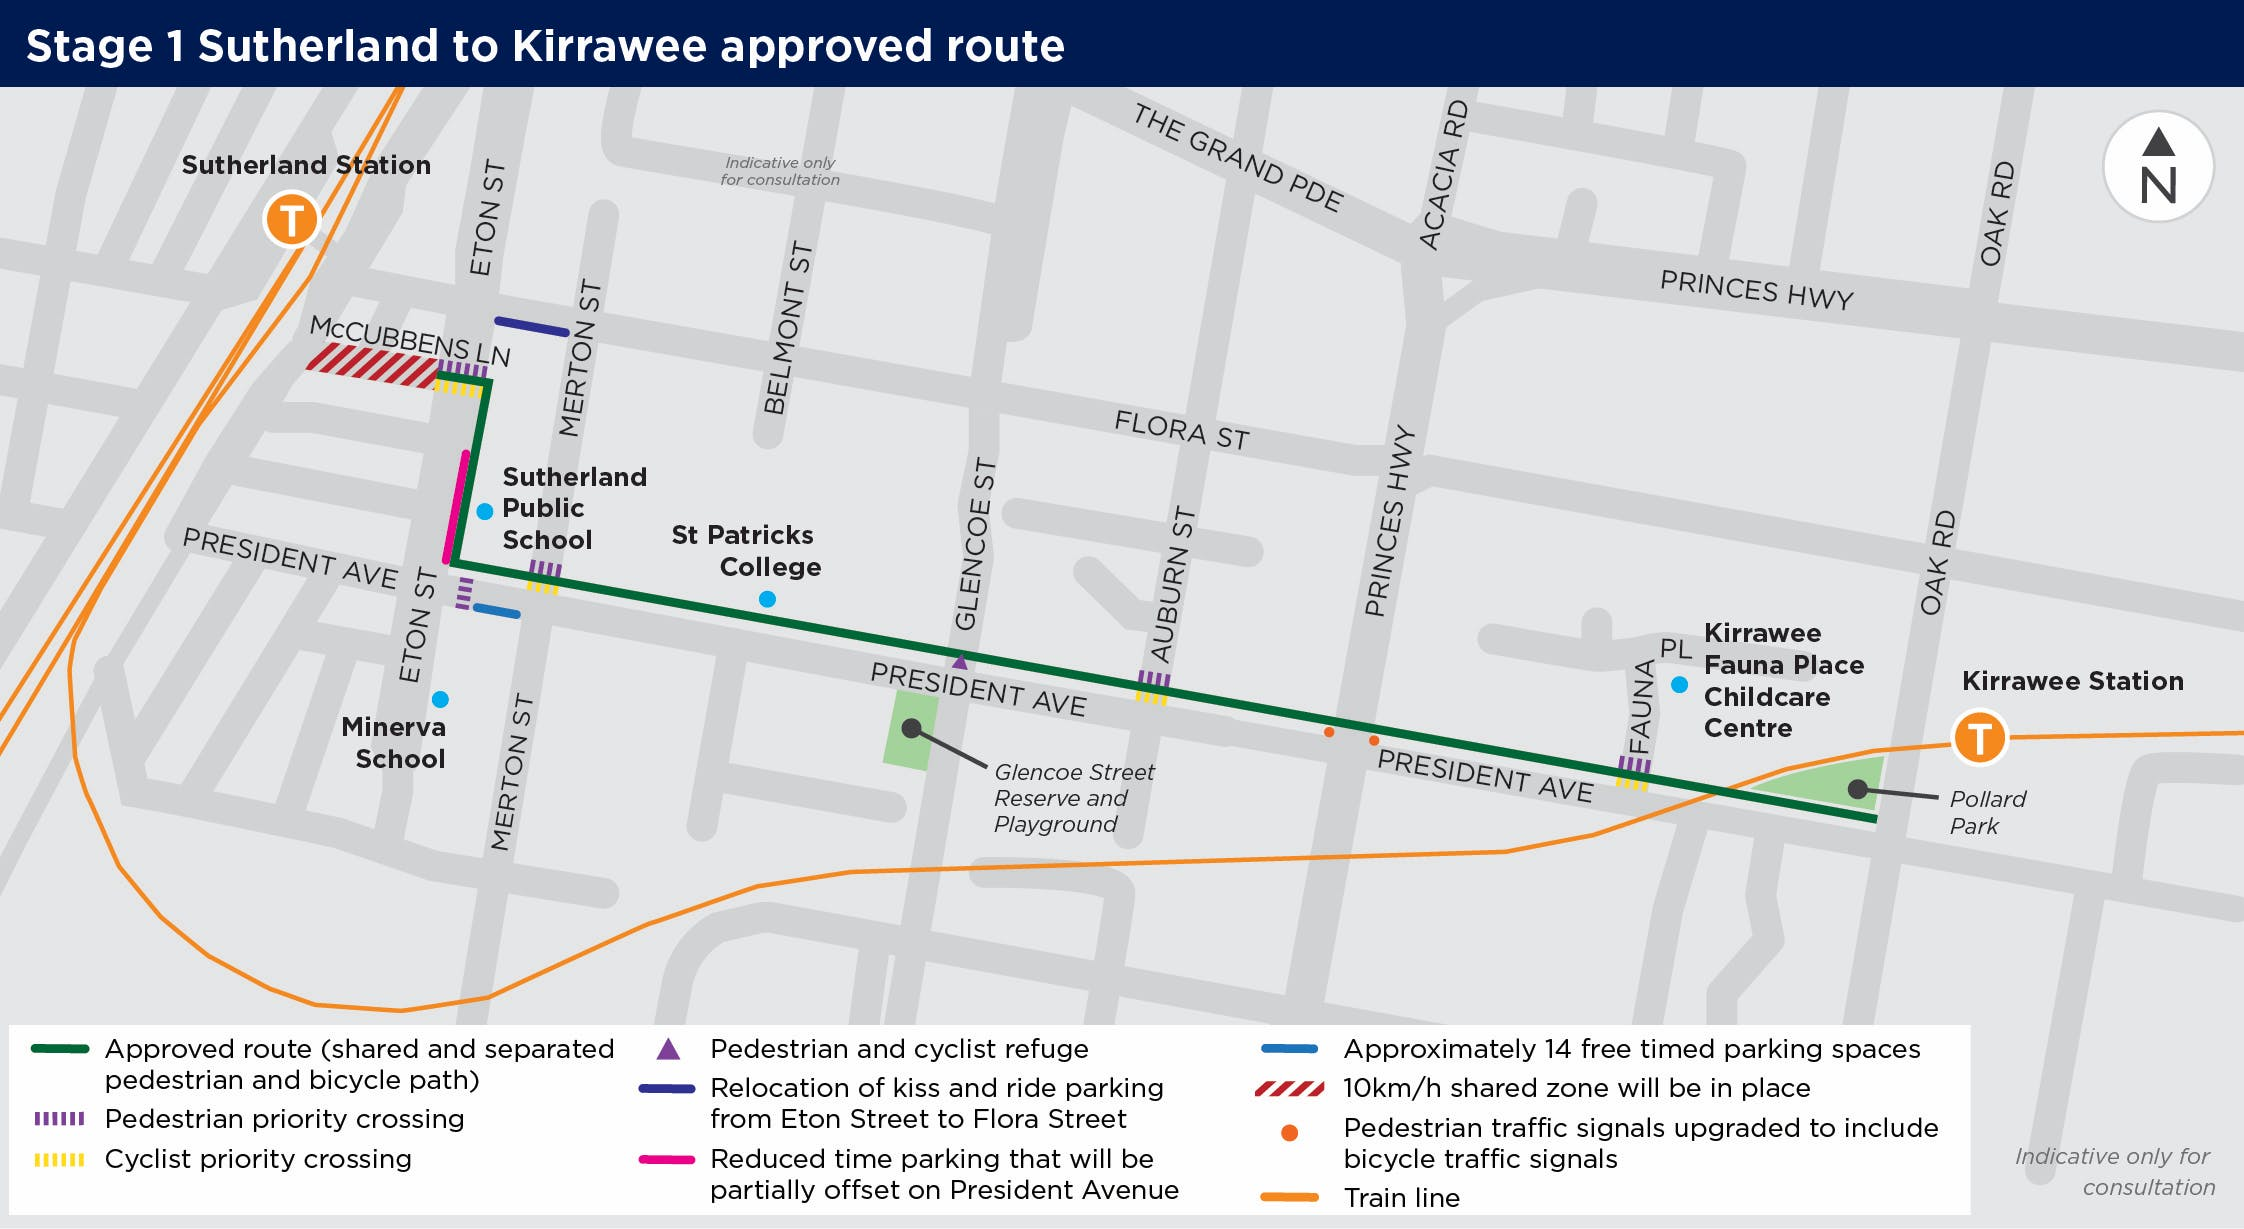 Stage1 Sutherland to Kirrawee approved route